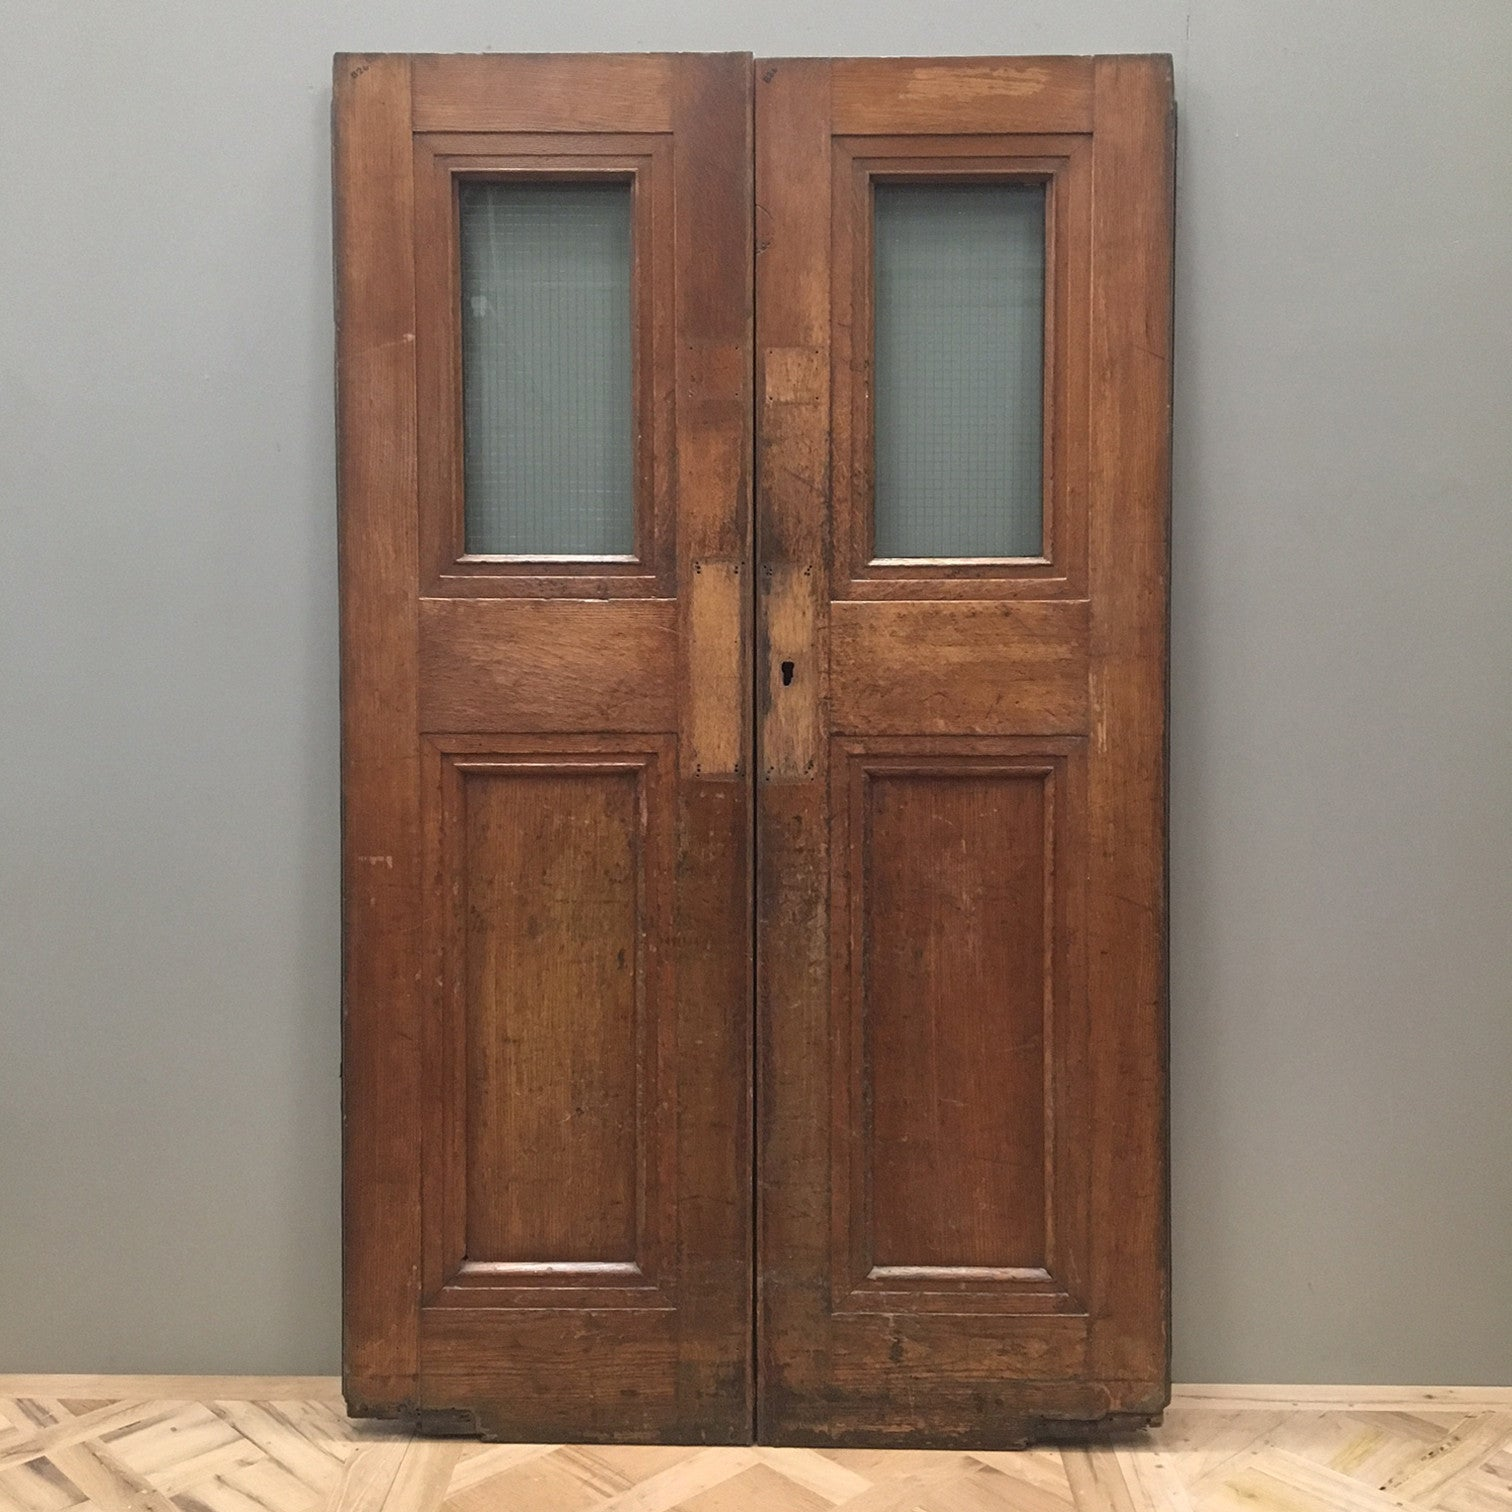 Reclaimed Oak Copper Light Double Doors 196cm x 117cm - architectural-forum